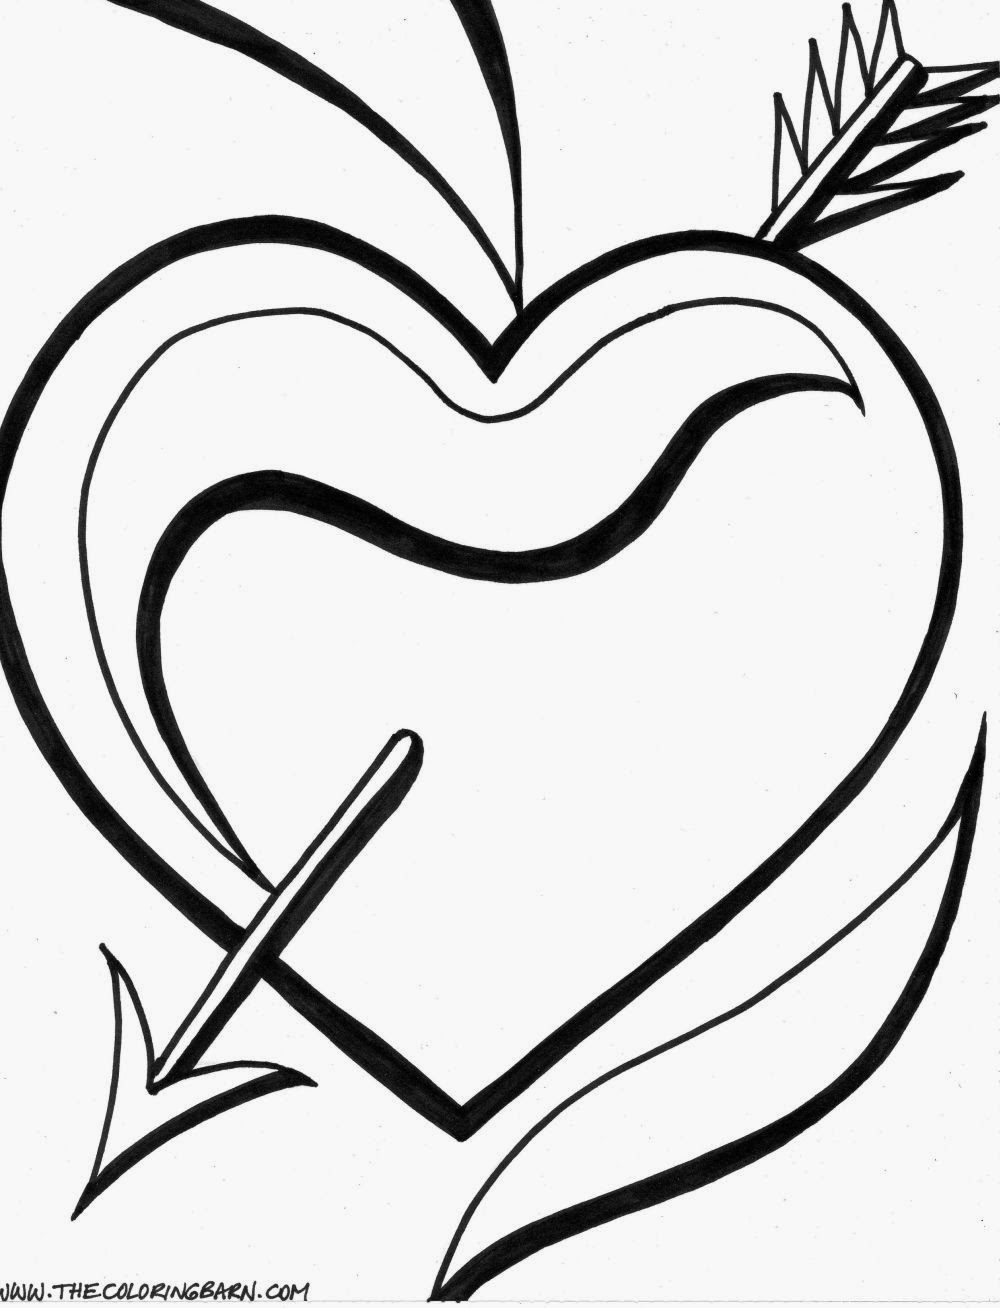 1000x1308 Best Hd Poop Emoji Black And White Coloring Pages Images